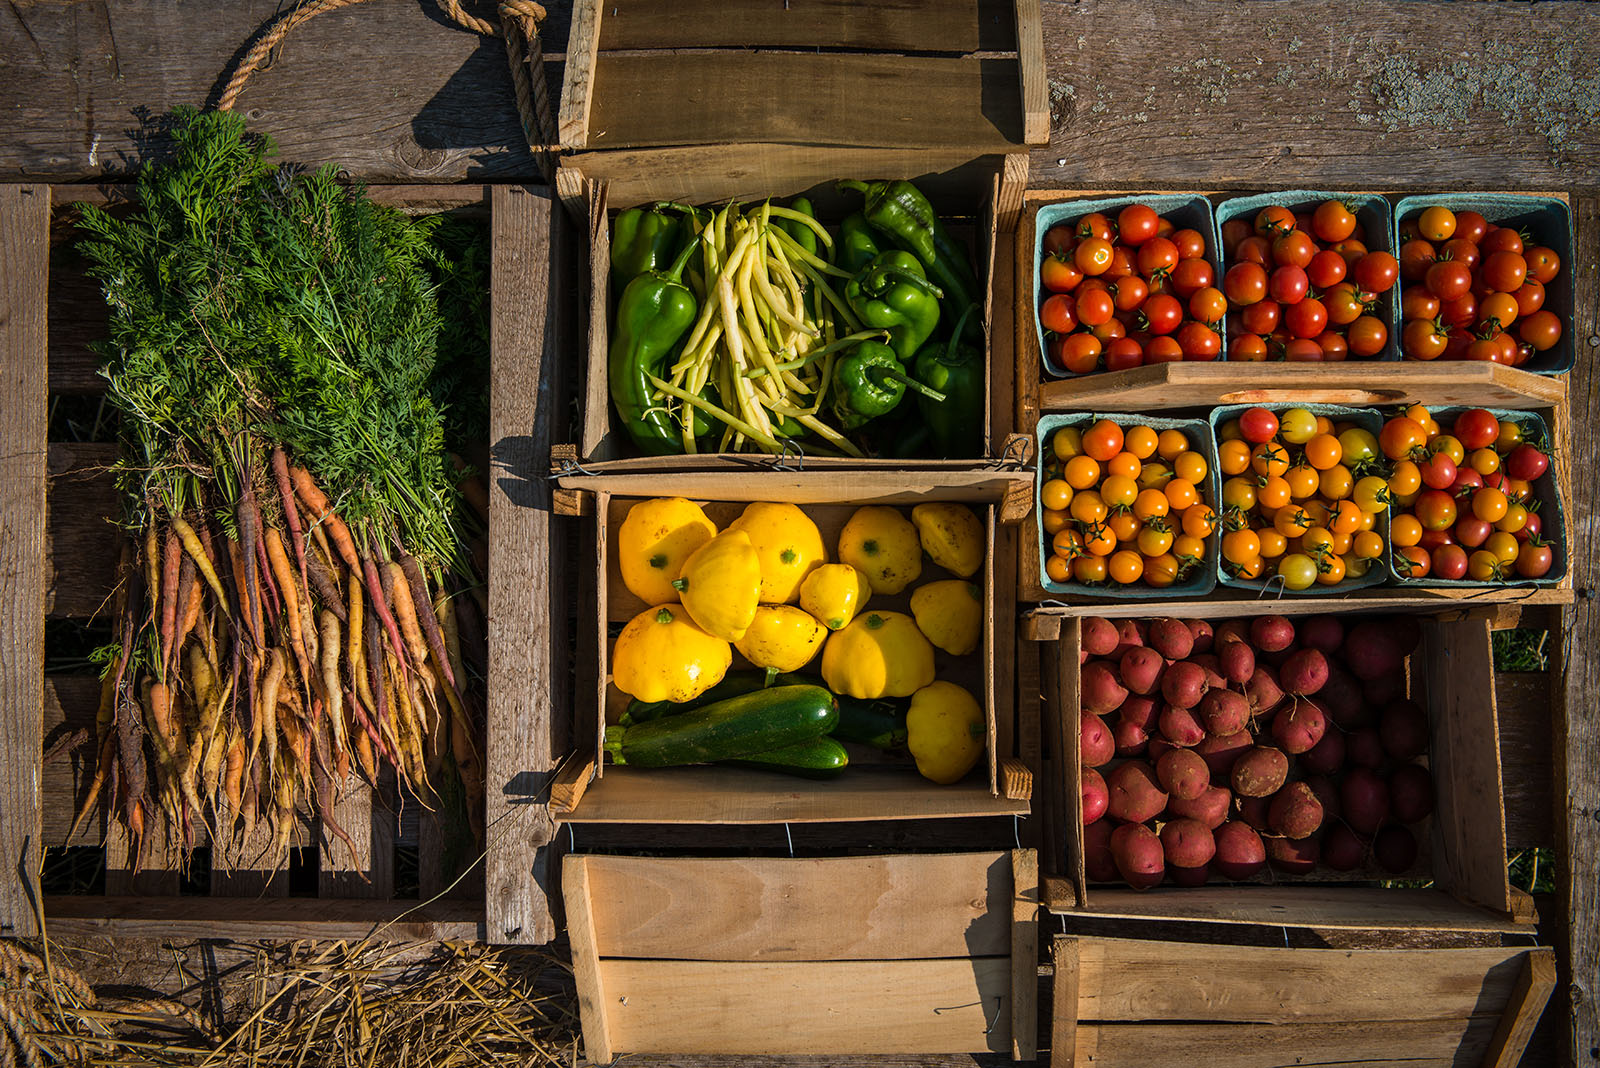 vegetables in crates